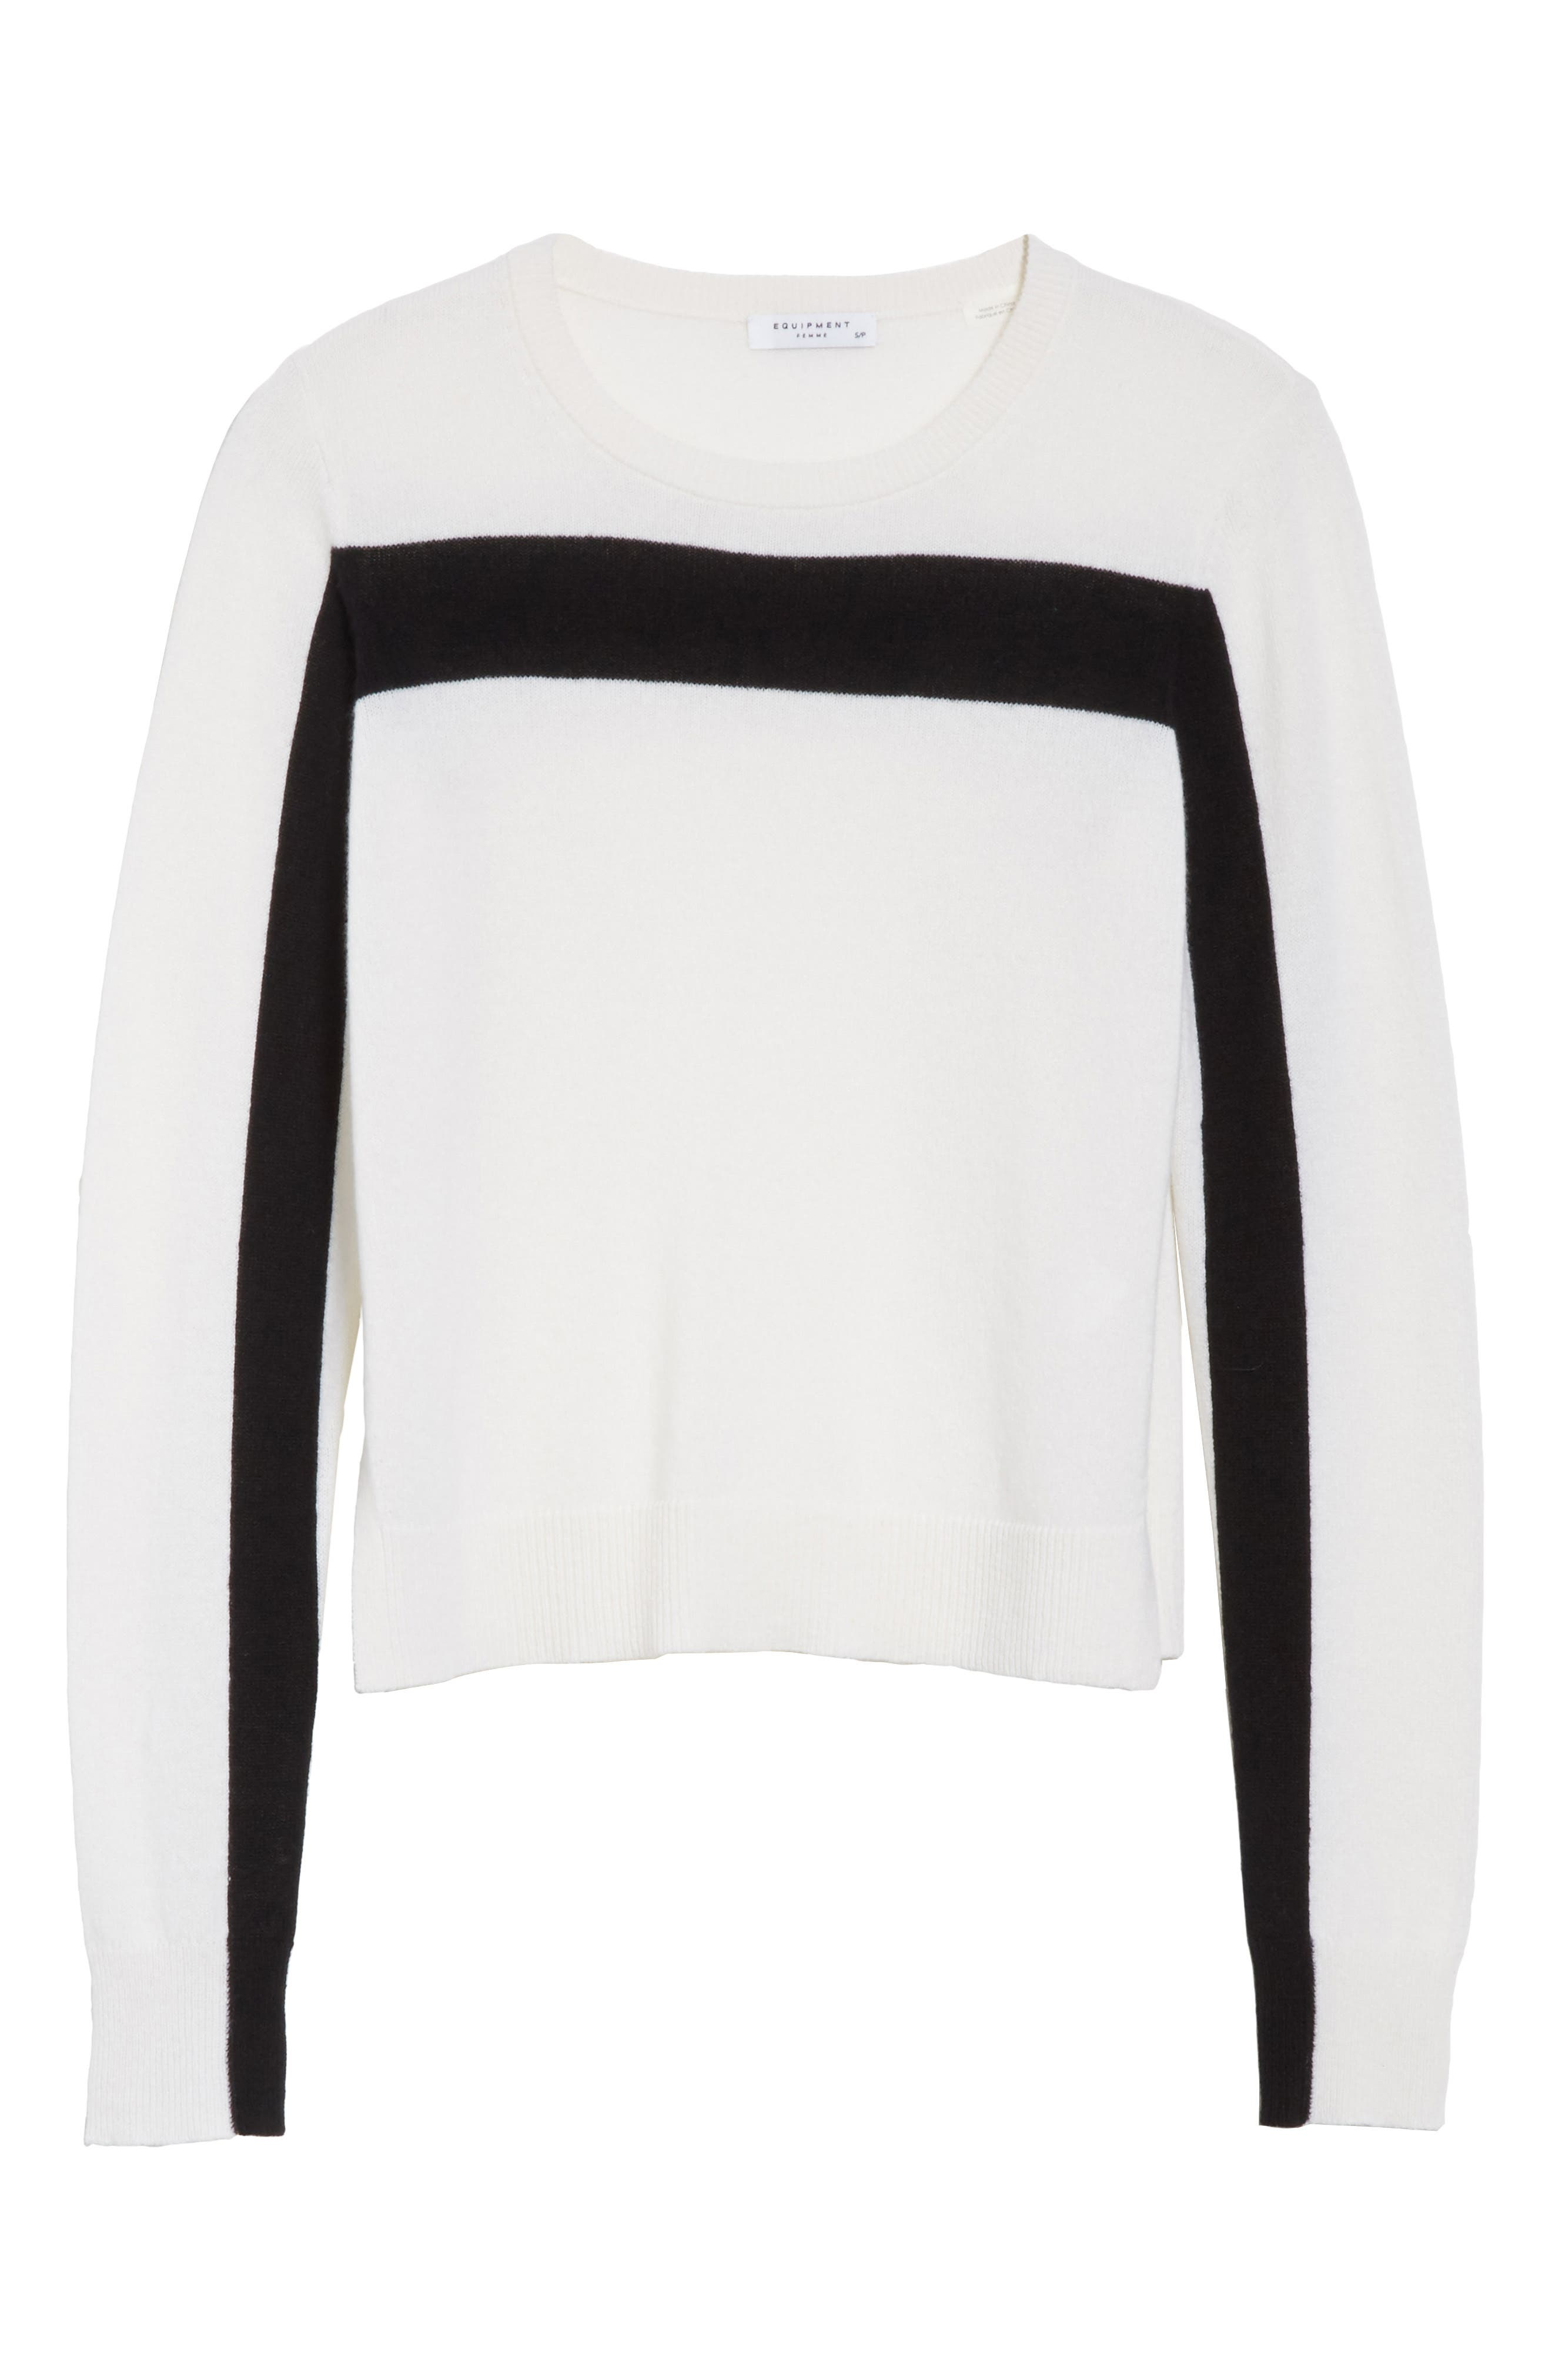 Shirley Cashmere Sweater,                             Alternate thumbnail 6, color,                             Ivory/ Black